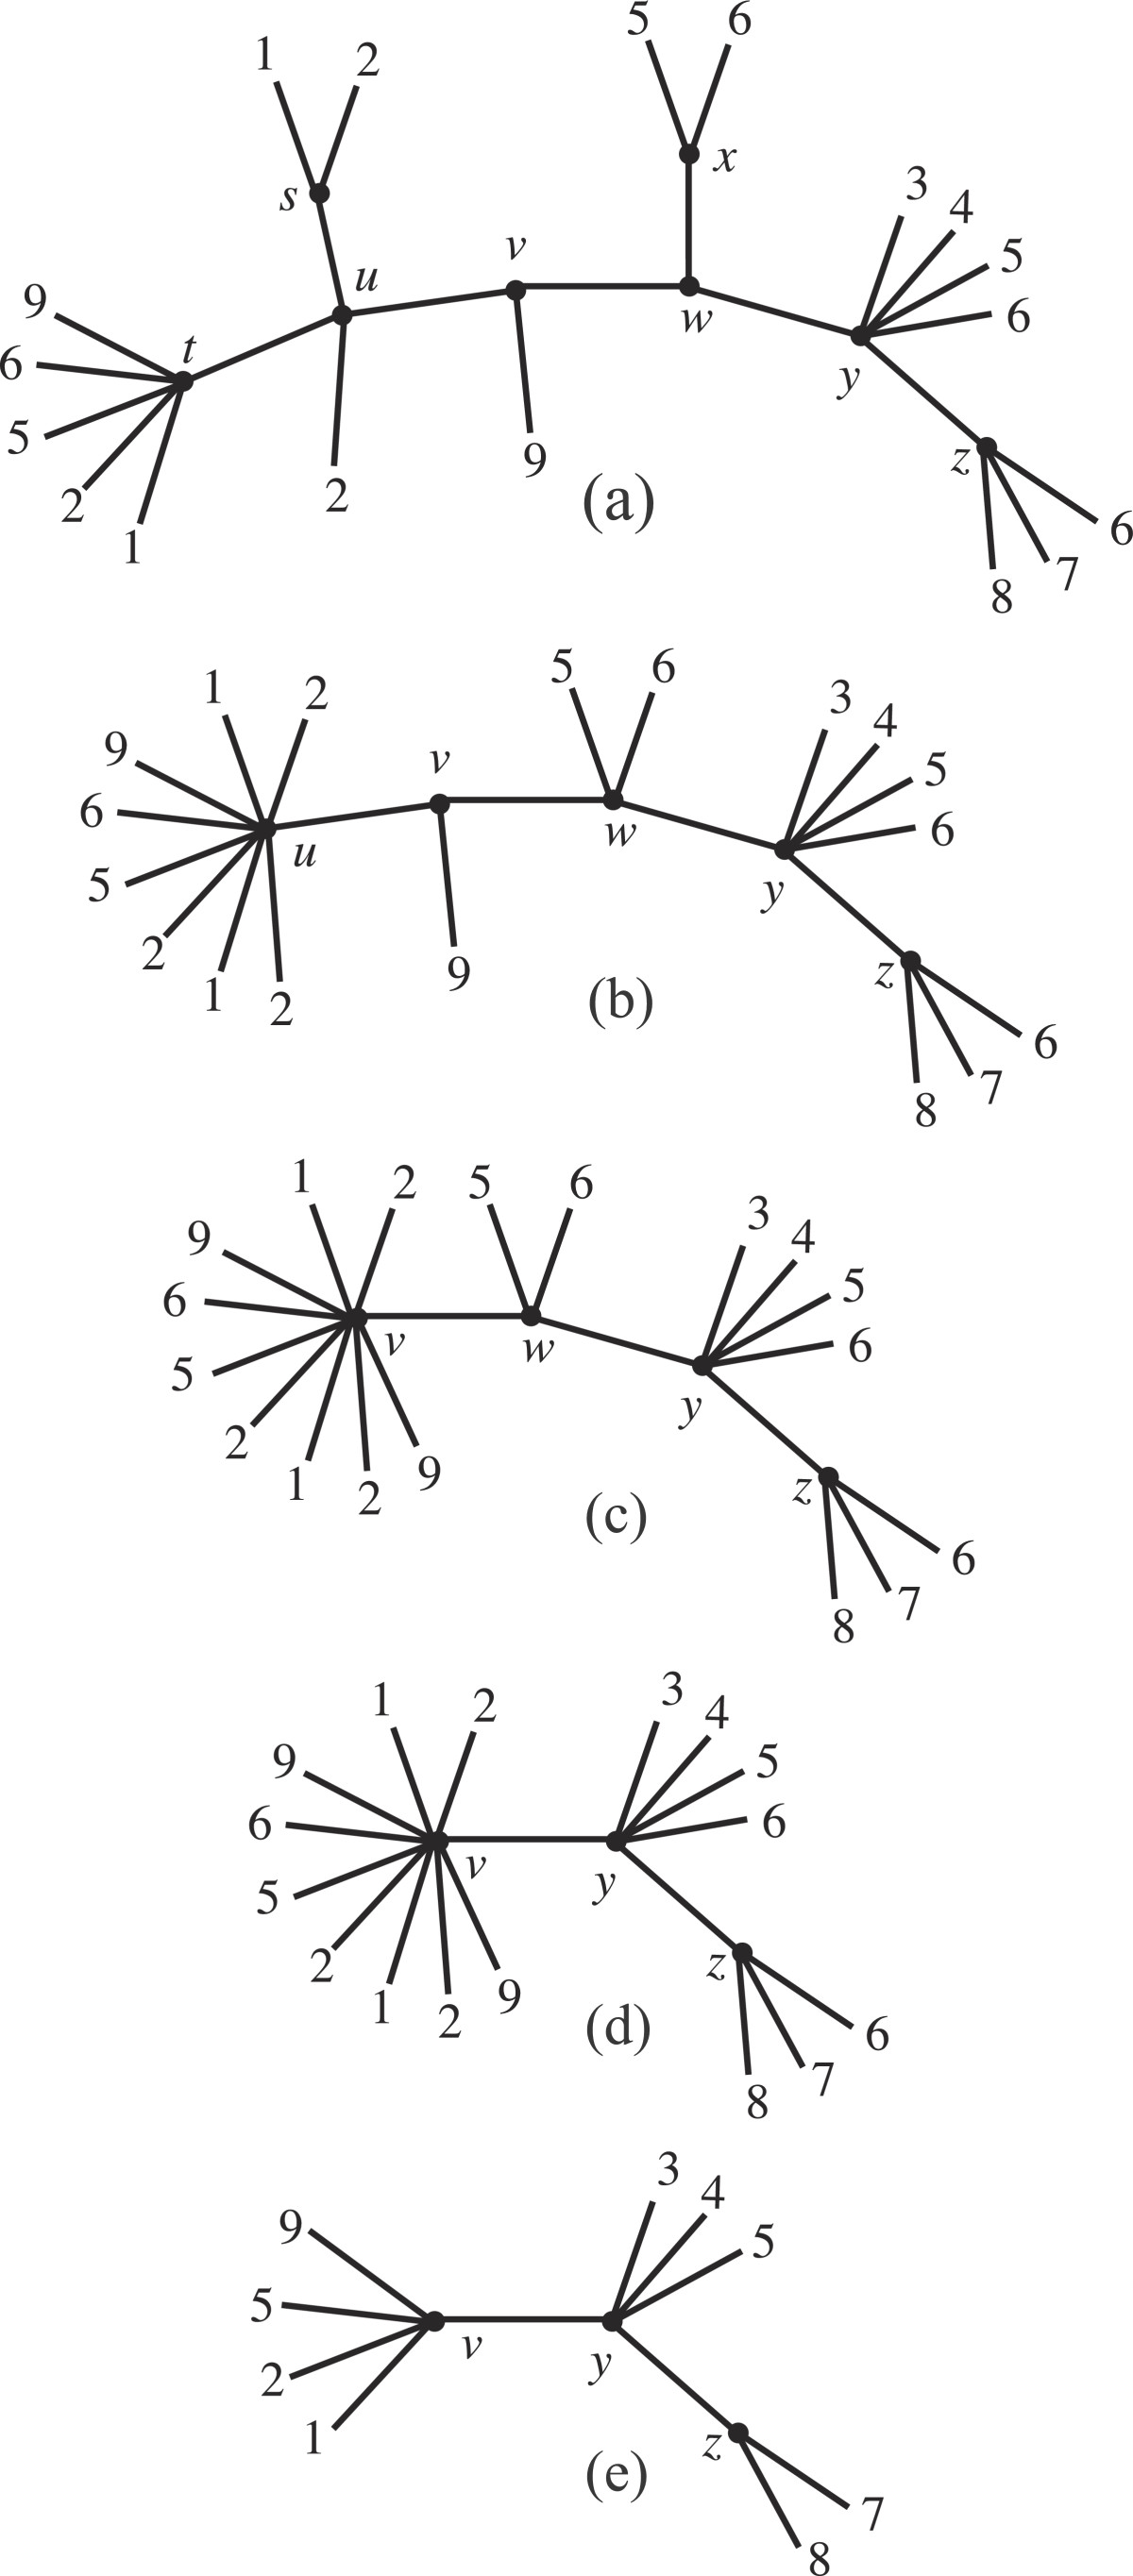 http://static-content.springer.com/image/art%3A10.1186%2F1748-7188-8-18/MediaObjects/13015_2012_Article_191_Fig9_HTML.jpg